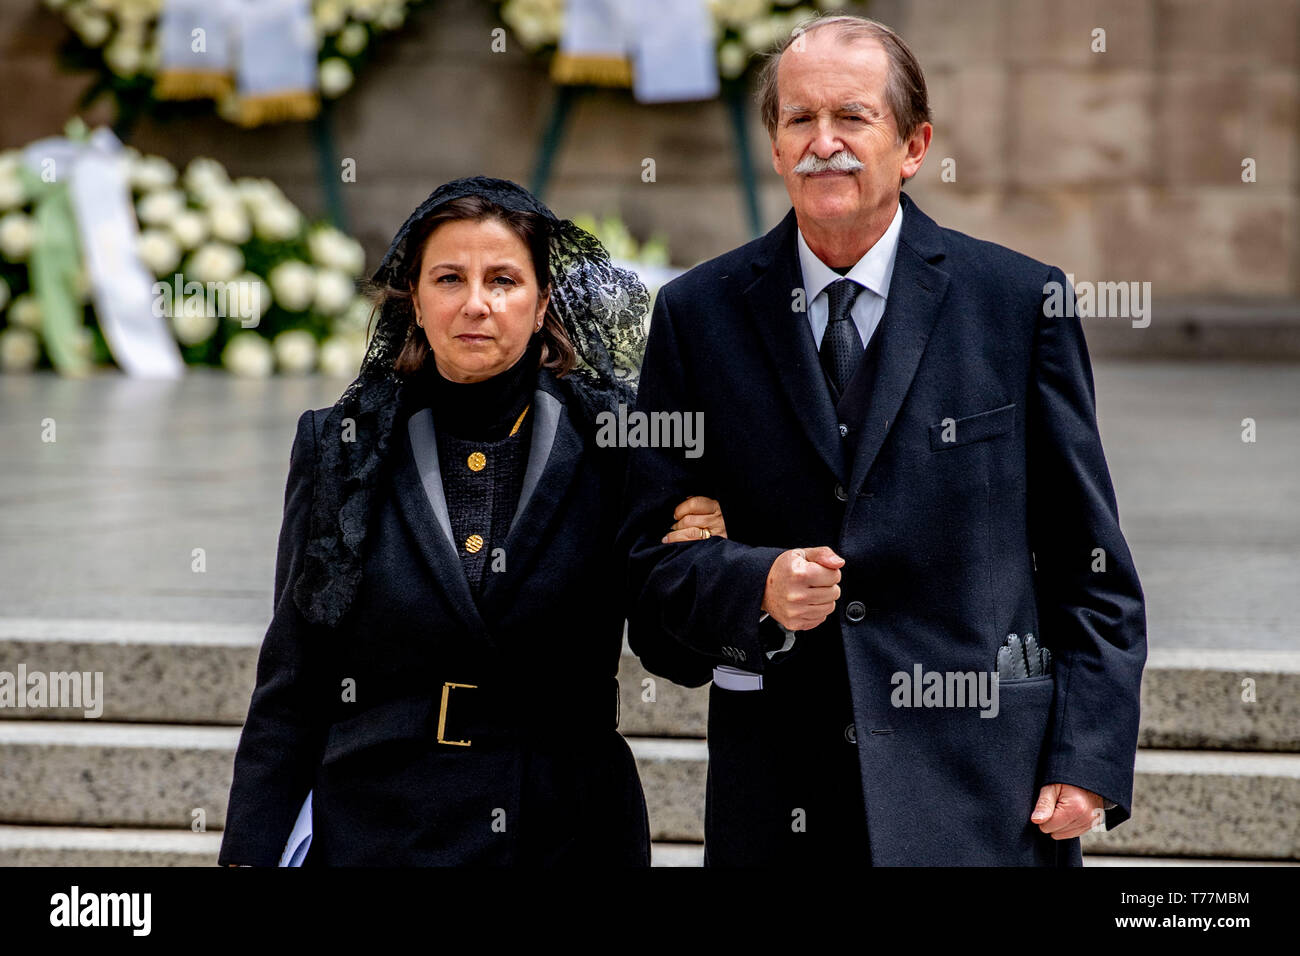 Anne Duarte Escort the duke of braganza high resolution stock photography and